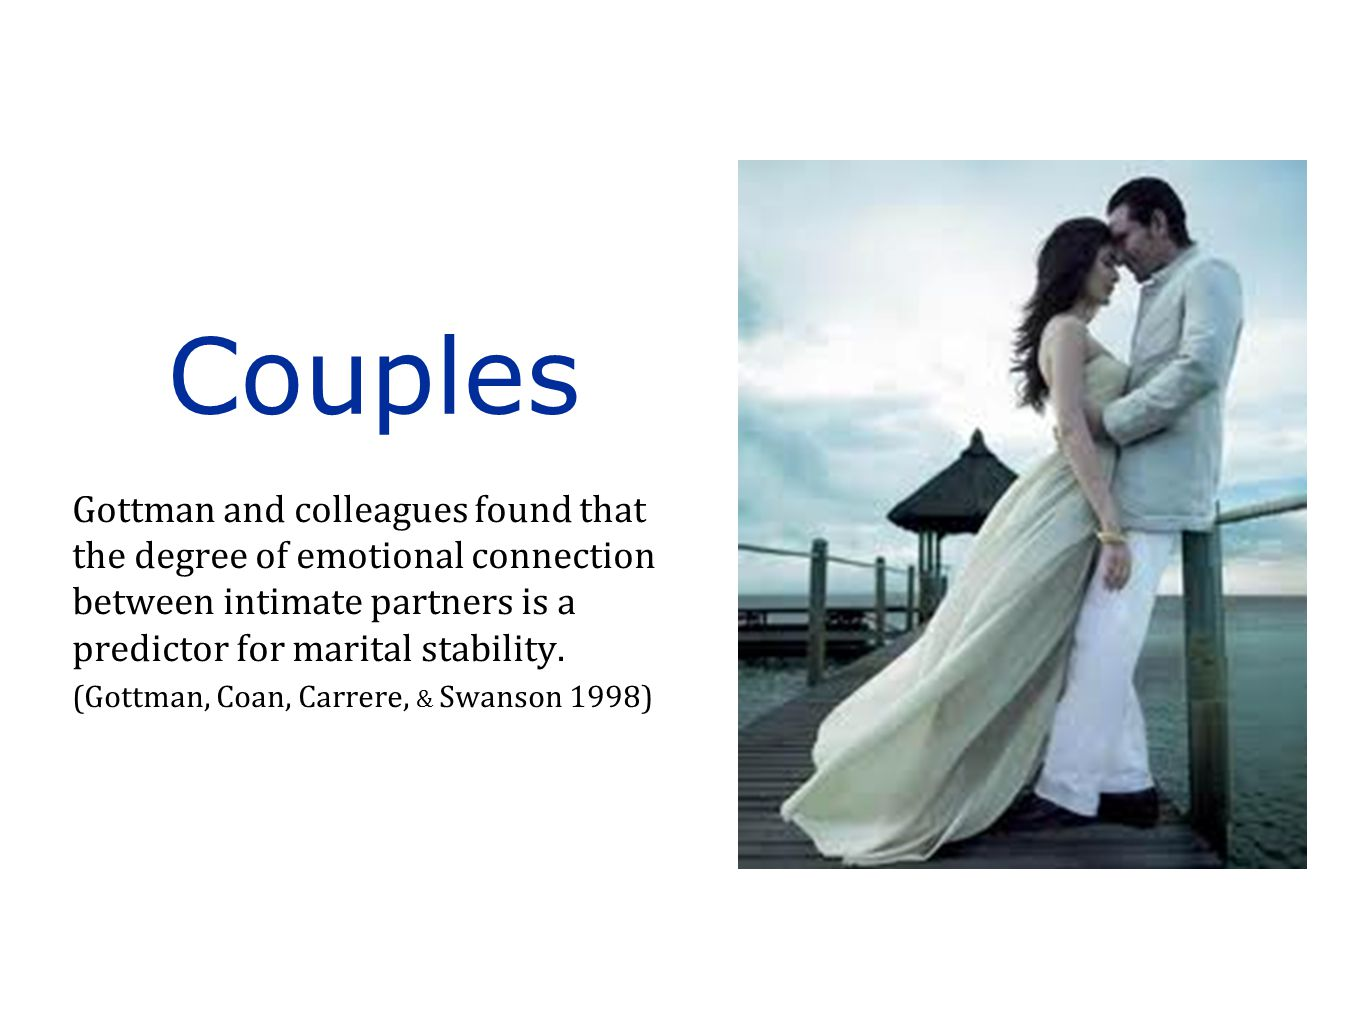 Gottman and colleagues found that the degree of emotional connection between intimate partners is a predictor for marital stability. (Gottman, Coan, C